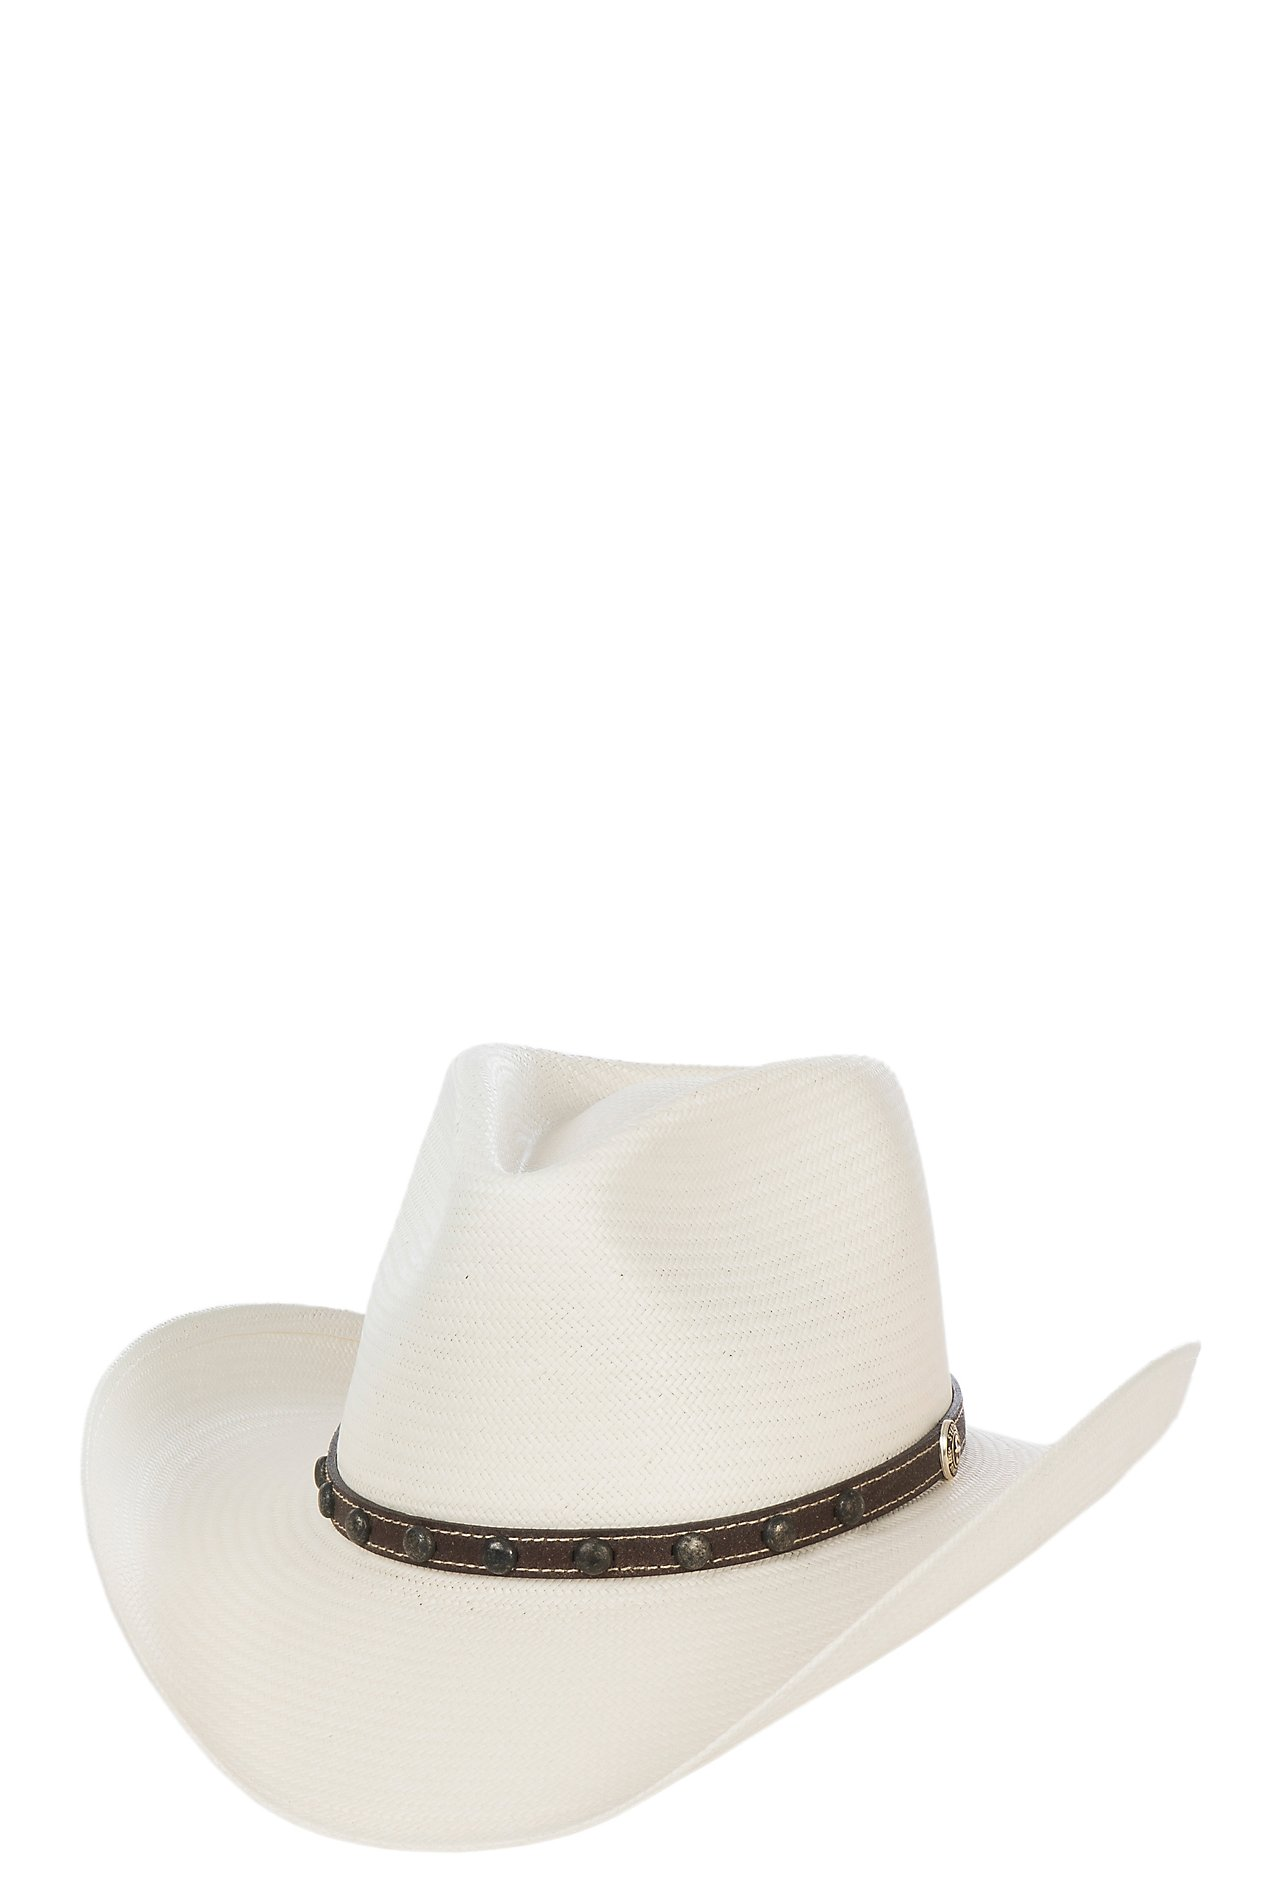 5fca5399aa5 Stetson 8X Cyprus Pinch Front Natural Straw Cowboy Hat